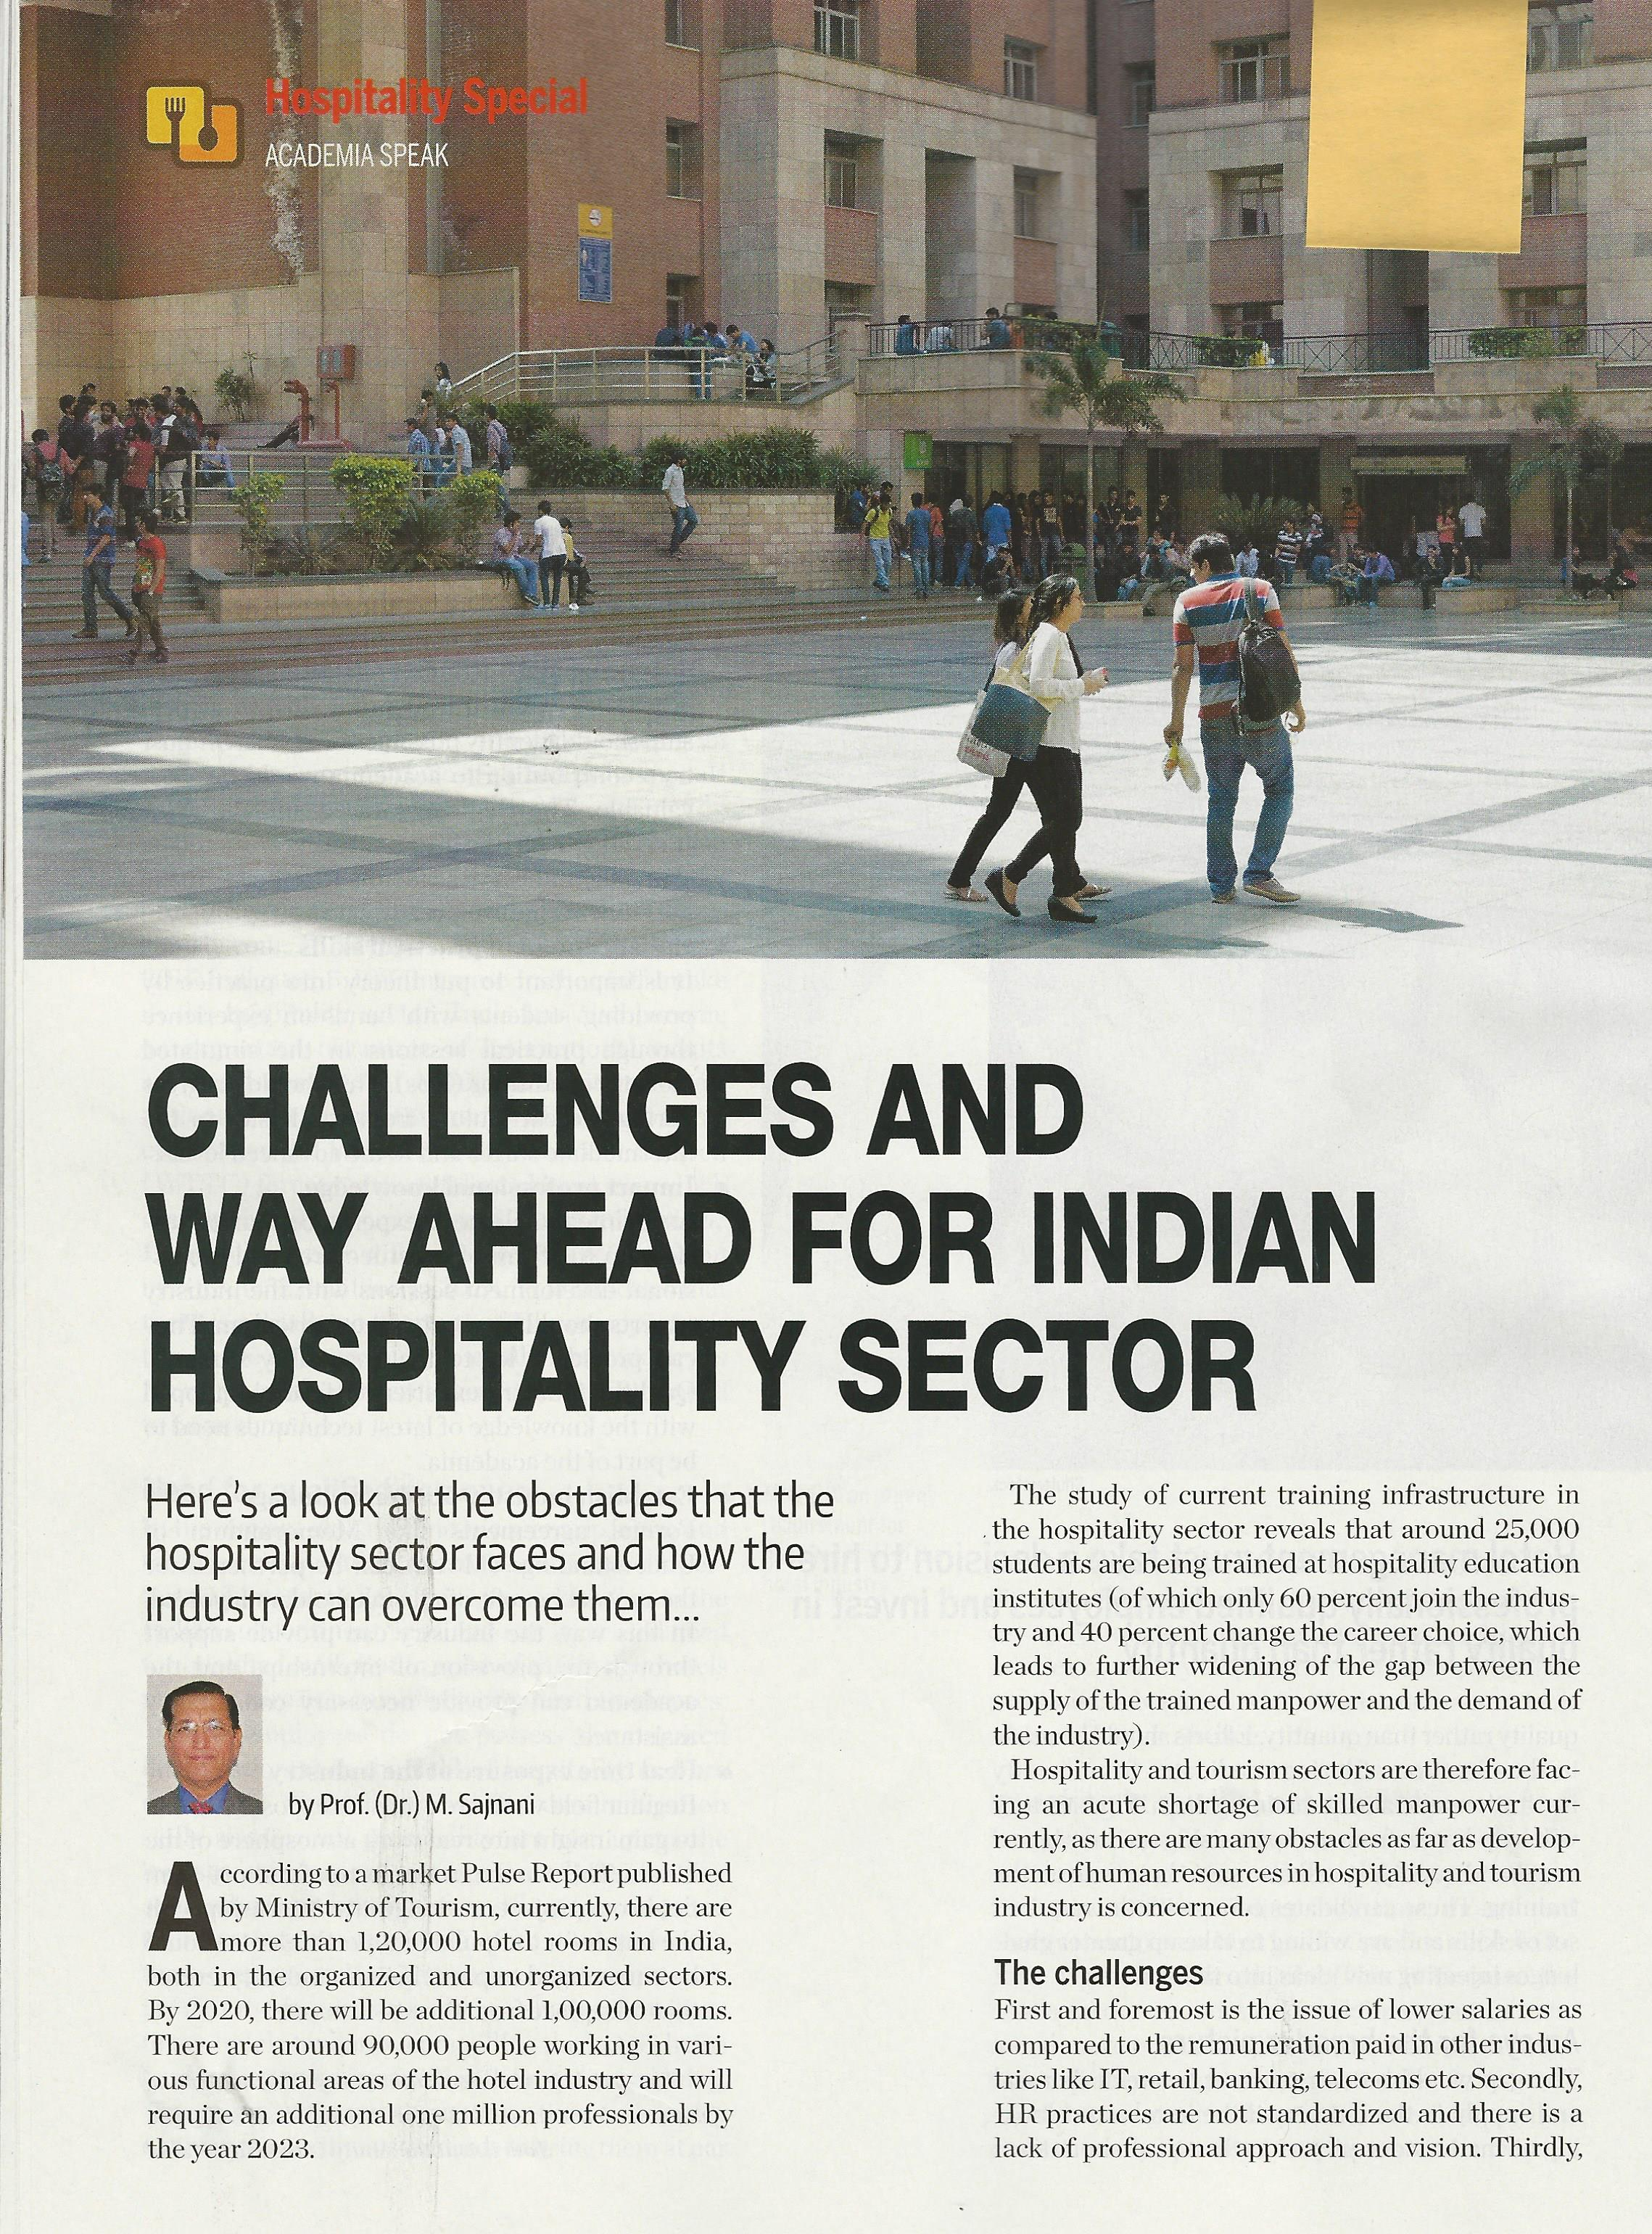 Challenges and way ahead for Indian Hospitality Sector